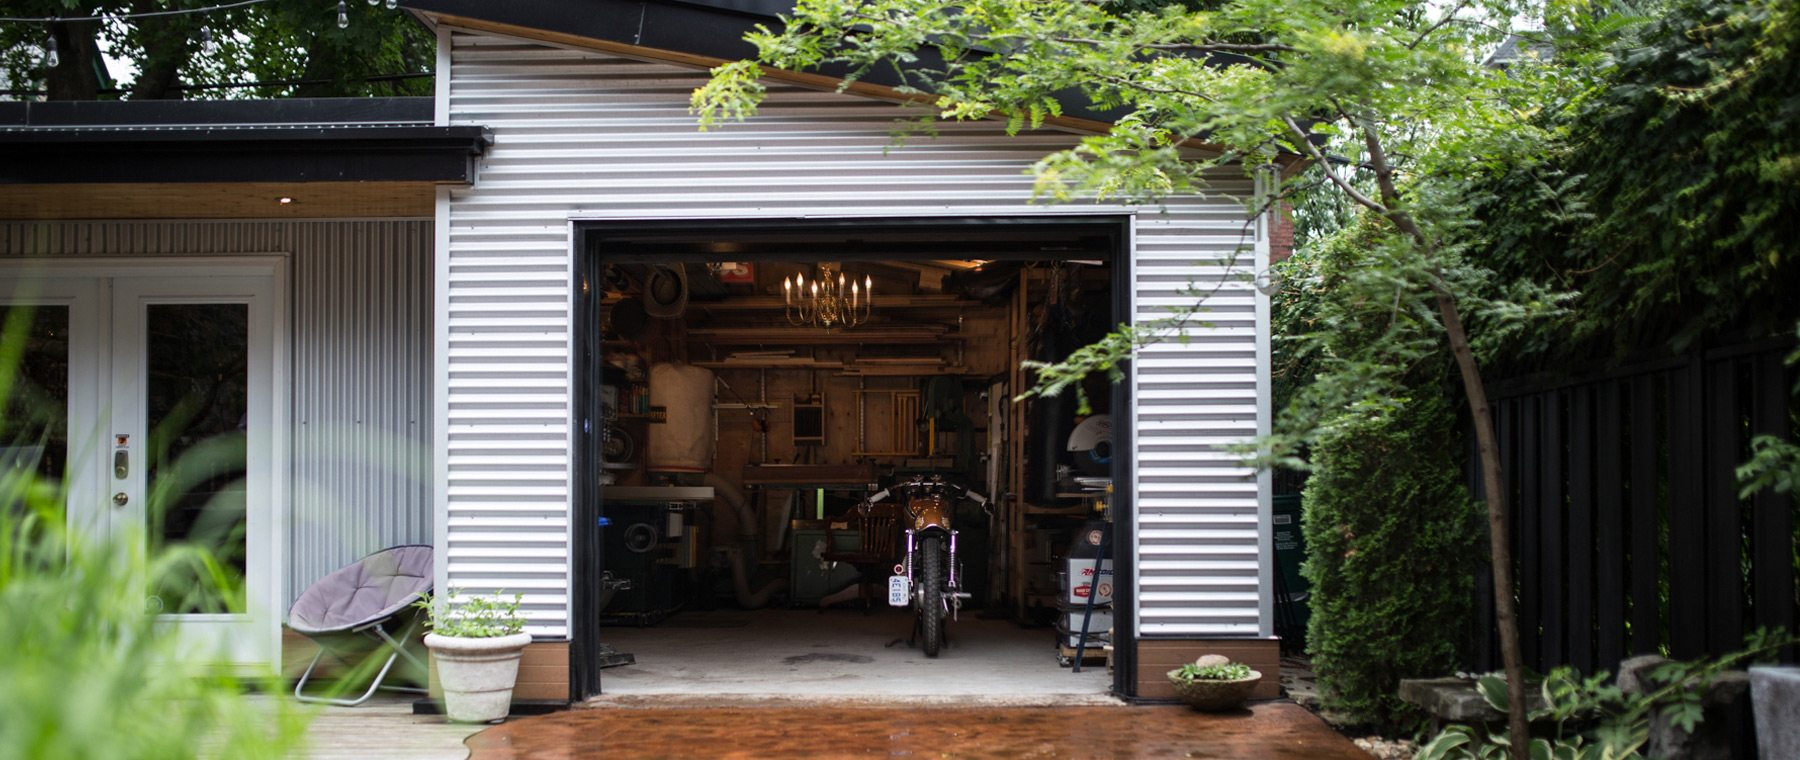 Woodworking studio designed to morph into anything next homeowner desires